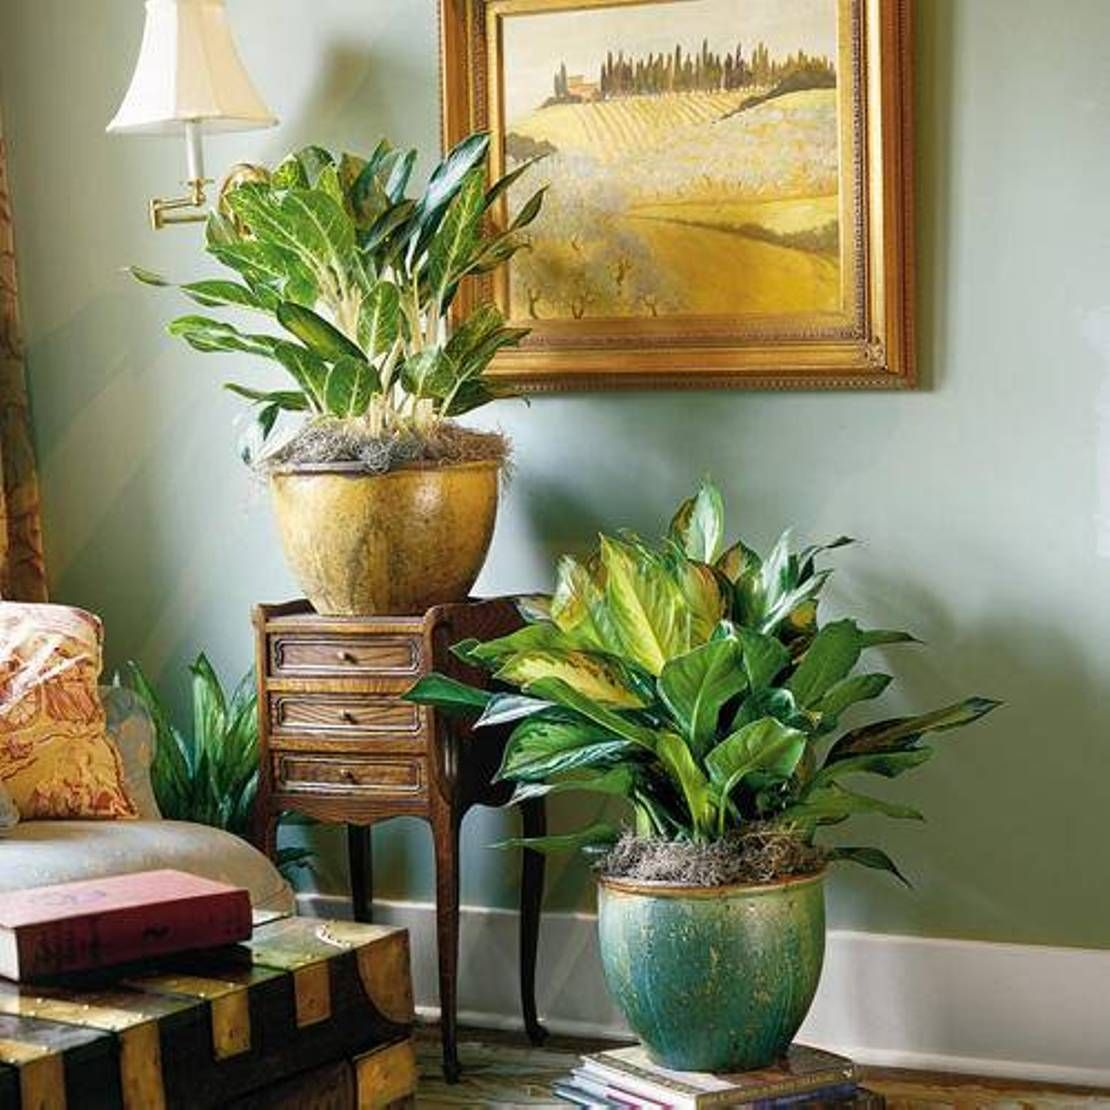 Home designs and decor beautiful amazing indoor plants for Home decor with plants